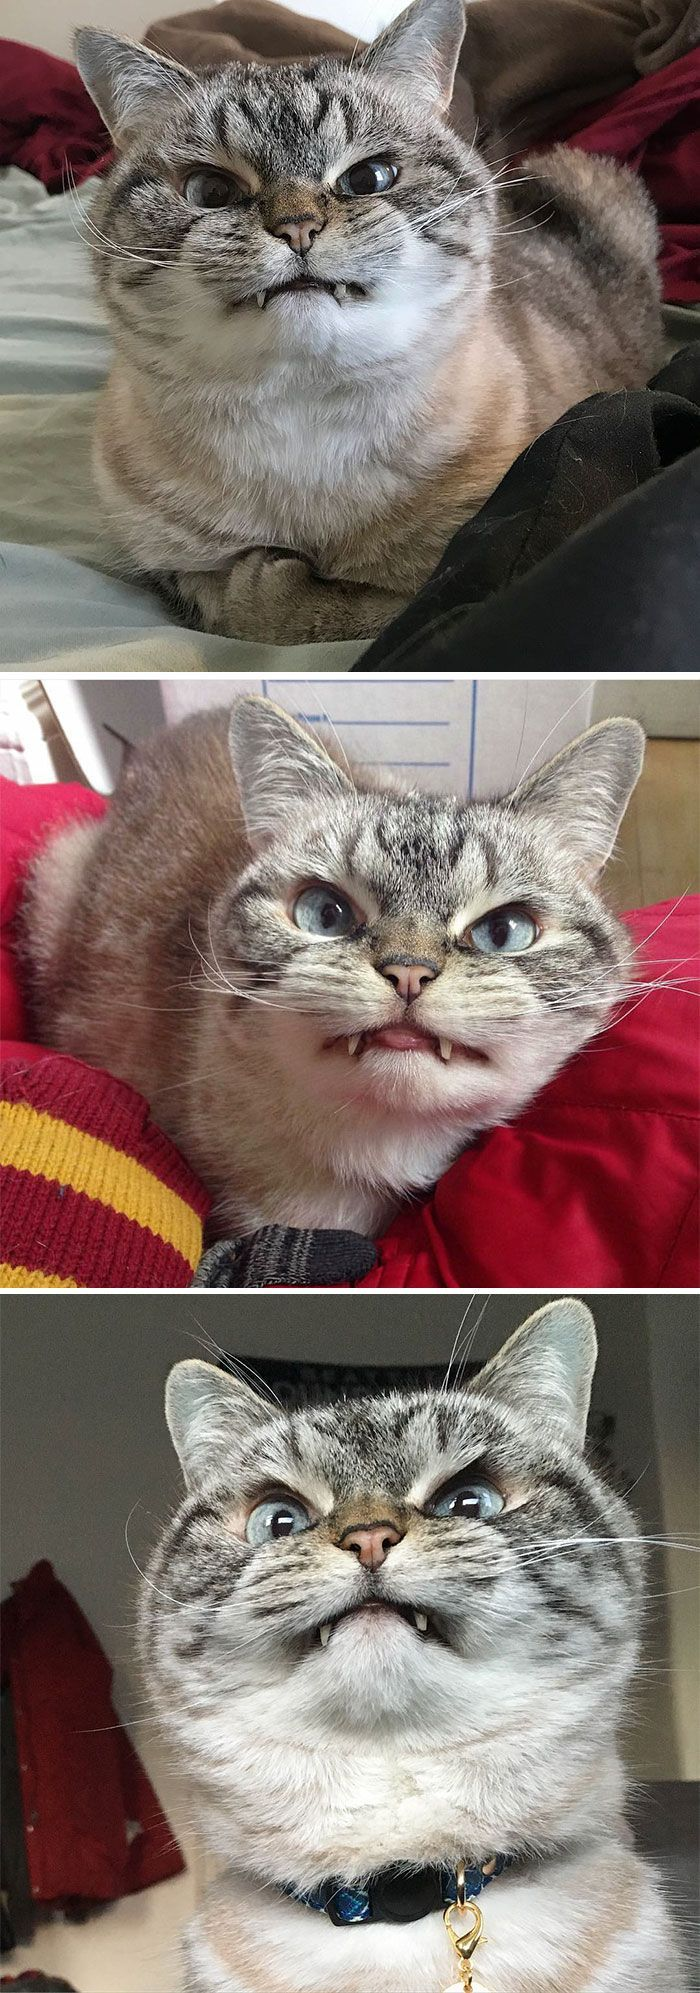 10 Of The Words Angriest Cats Ever Who Have Had Enough Of